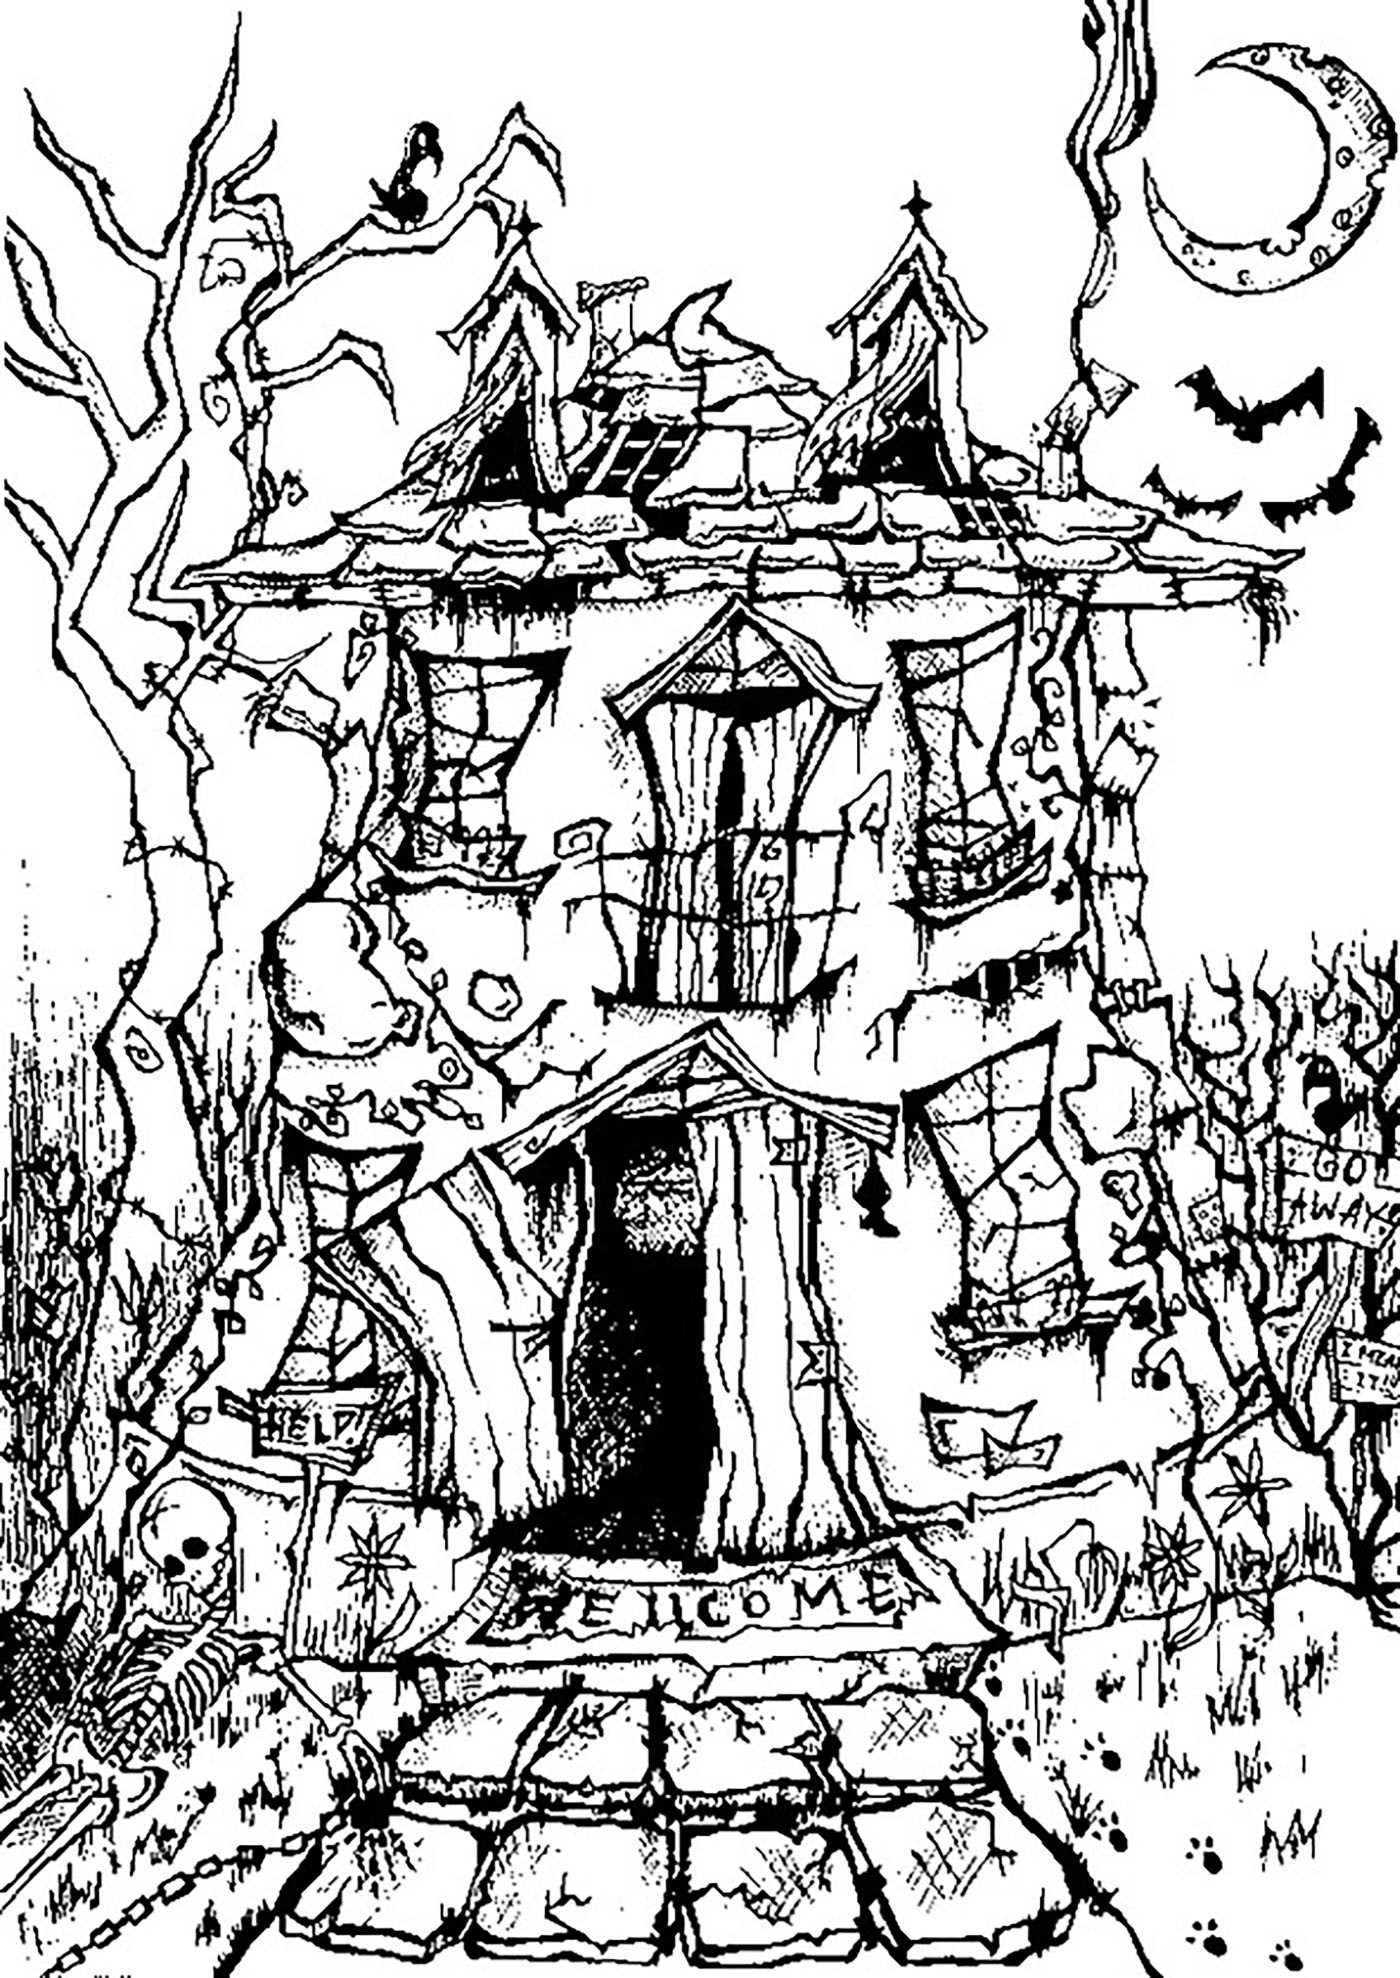 Coloring Pages For Adults Halloween  Halloween haunted house Halloween Adult Coloring Pages